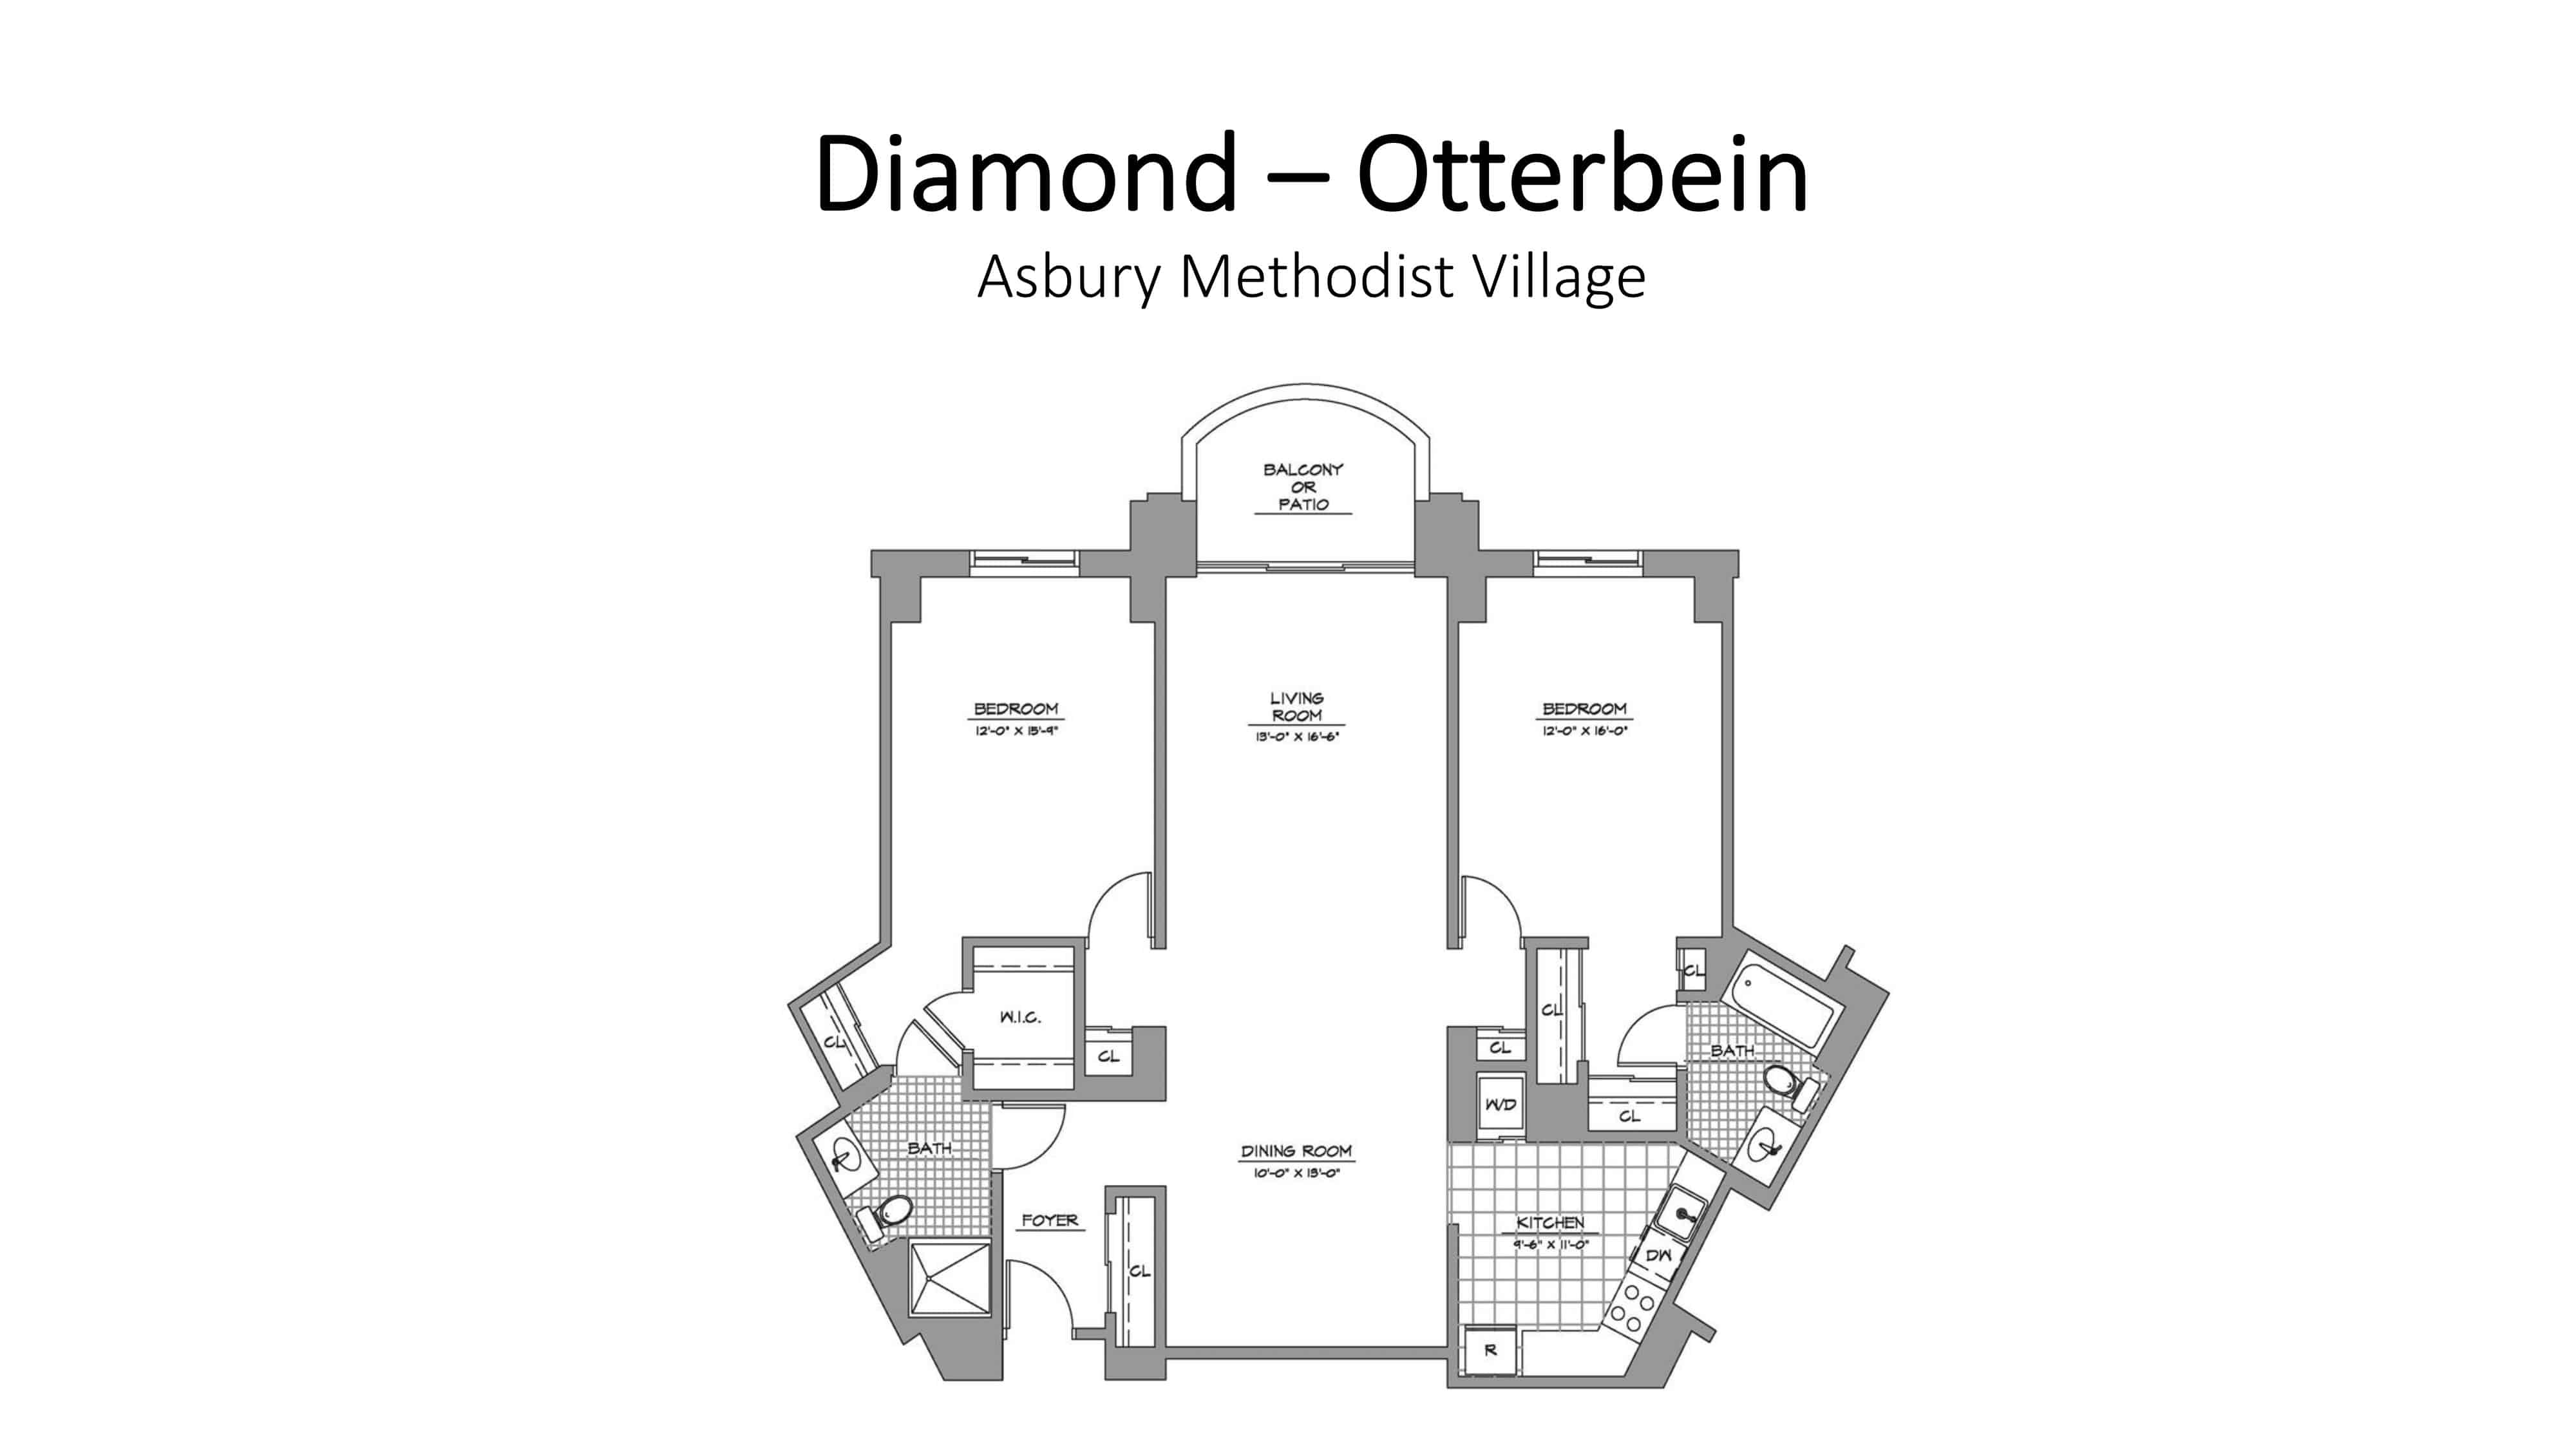 Asbury Methodist Village Diamond - Otterbein